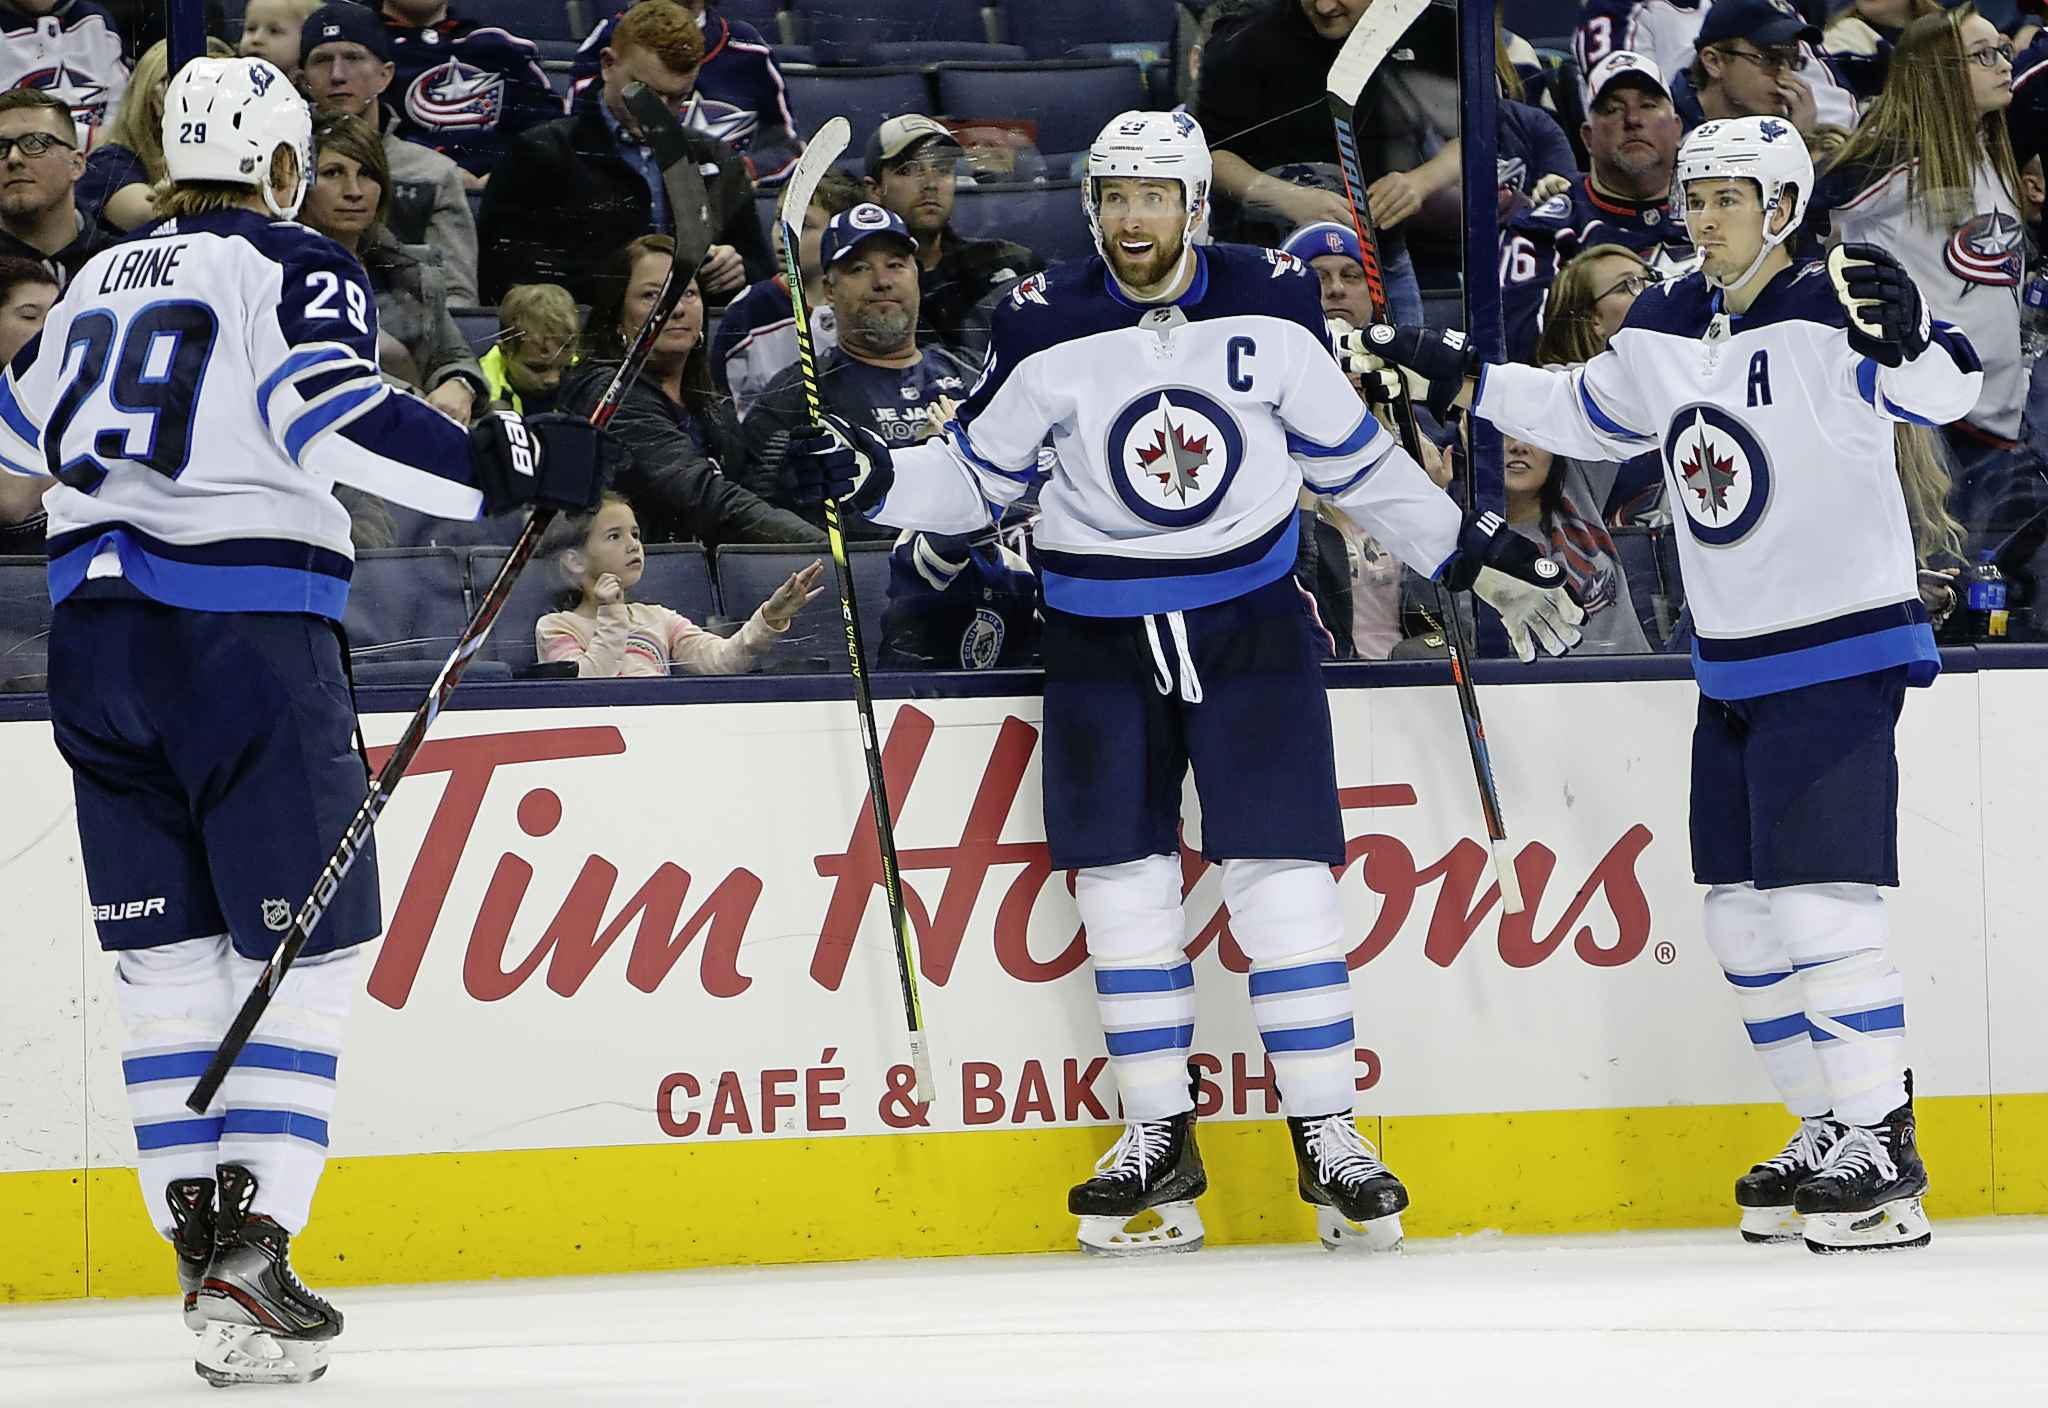 JAY LAPRETE / THE ASSOCIATED PRESS</p><p>Winnipeg Jets' Blake Wheeler, center, celebrates his goal against the Columbus Blue Jackets with teammates Patrik Laine, left, of Finland, and Mark Scheifele during the third period of an NHL hockey game Sunday, March 3, 2019, in Columbus, Ohio. The Jets beat the Blue Jackets 5-2.</p>